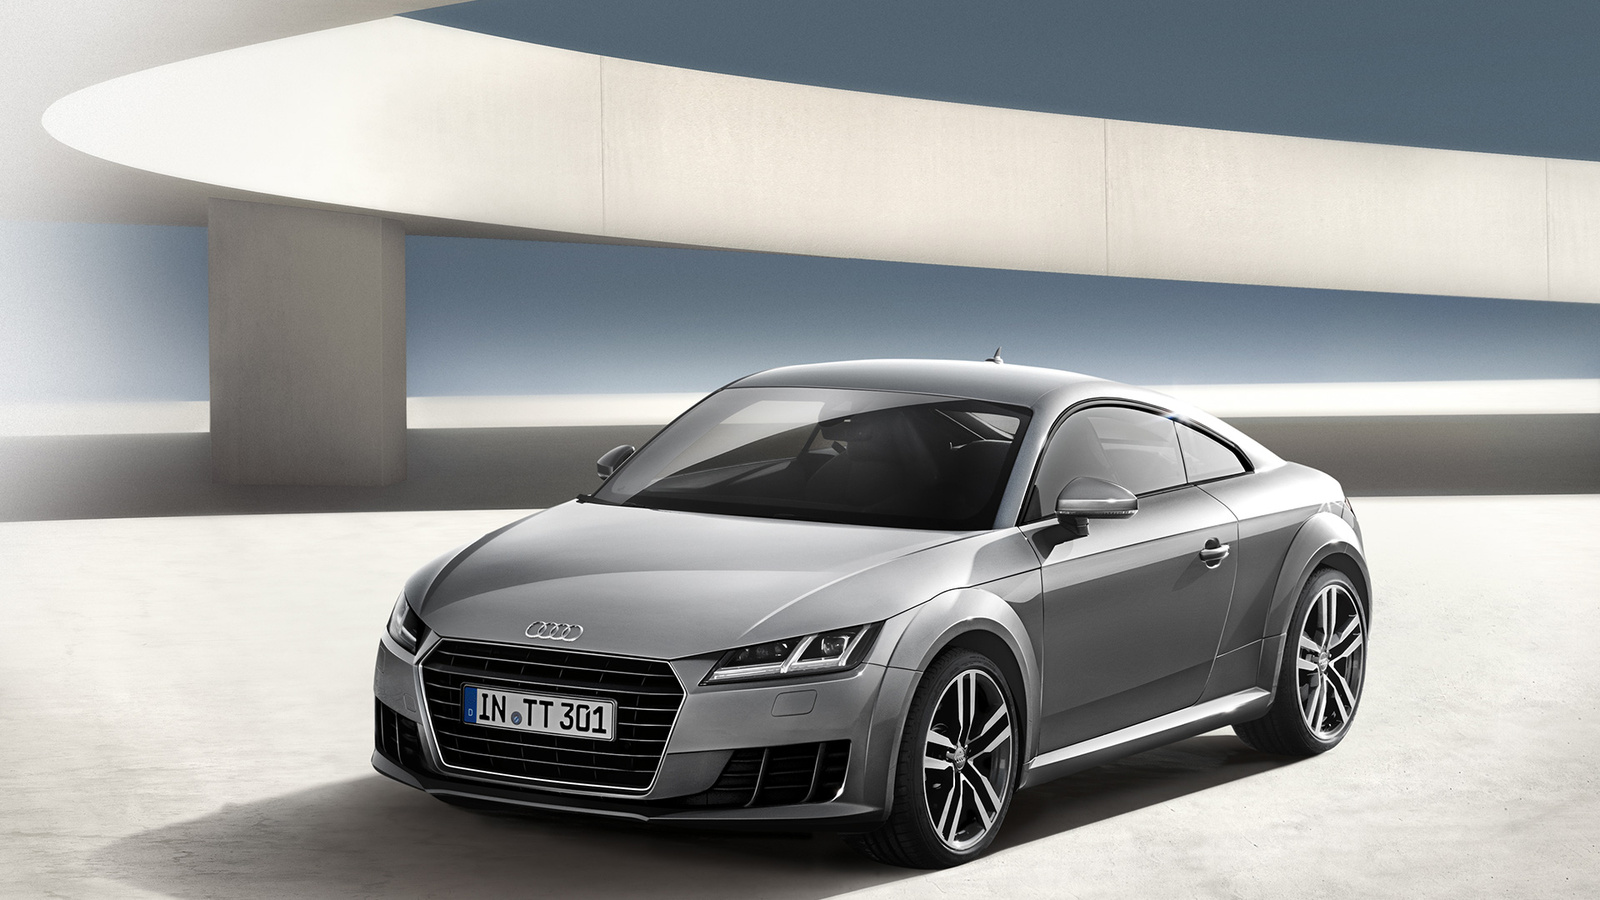 new 2014 2015 audi tt for sale cargurus. Black Bedroom Furniture Sets. Home Design Ideas